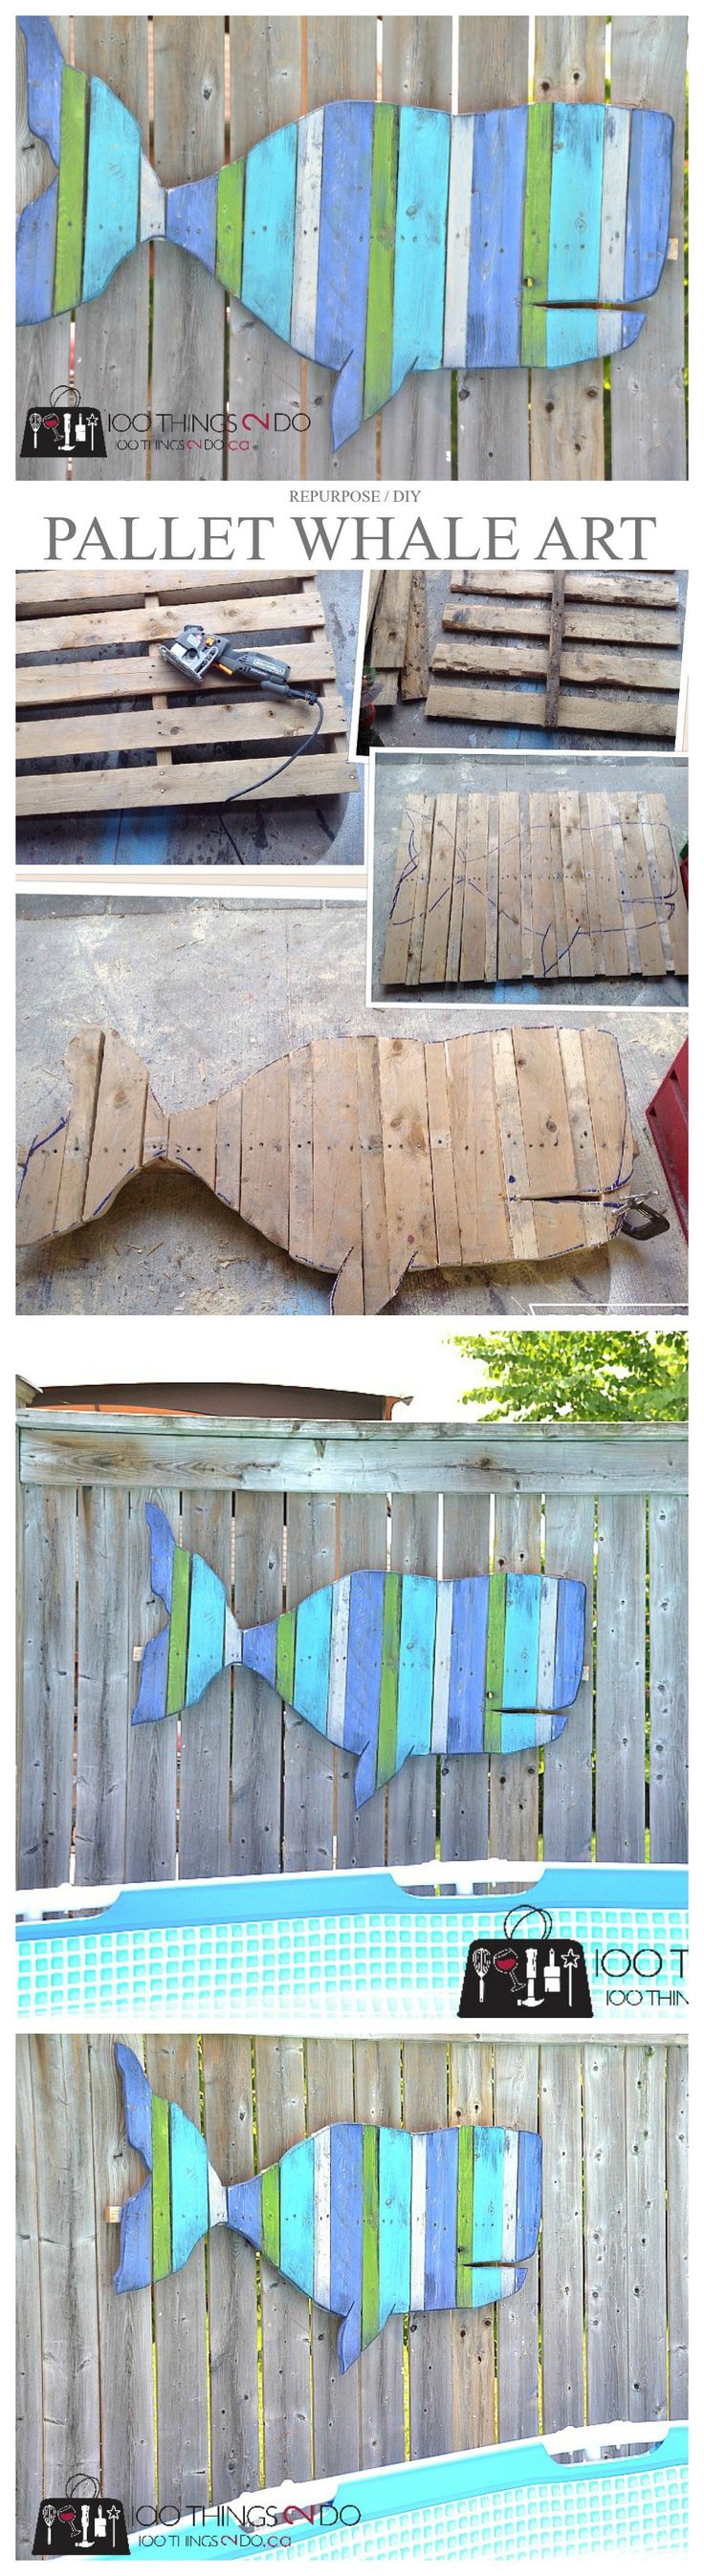 Epsom decking over a raised eyesore ashwell landscapes - Pallet Projects Fence Art Whale